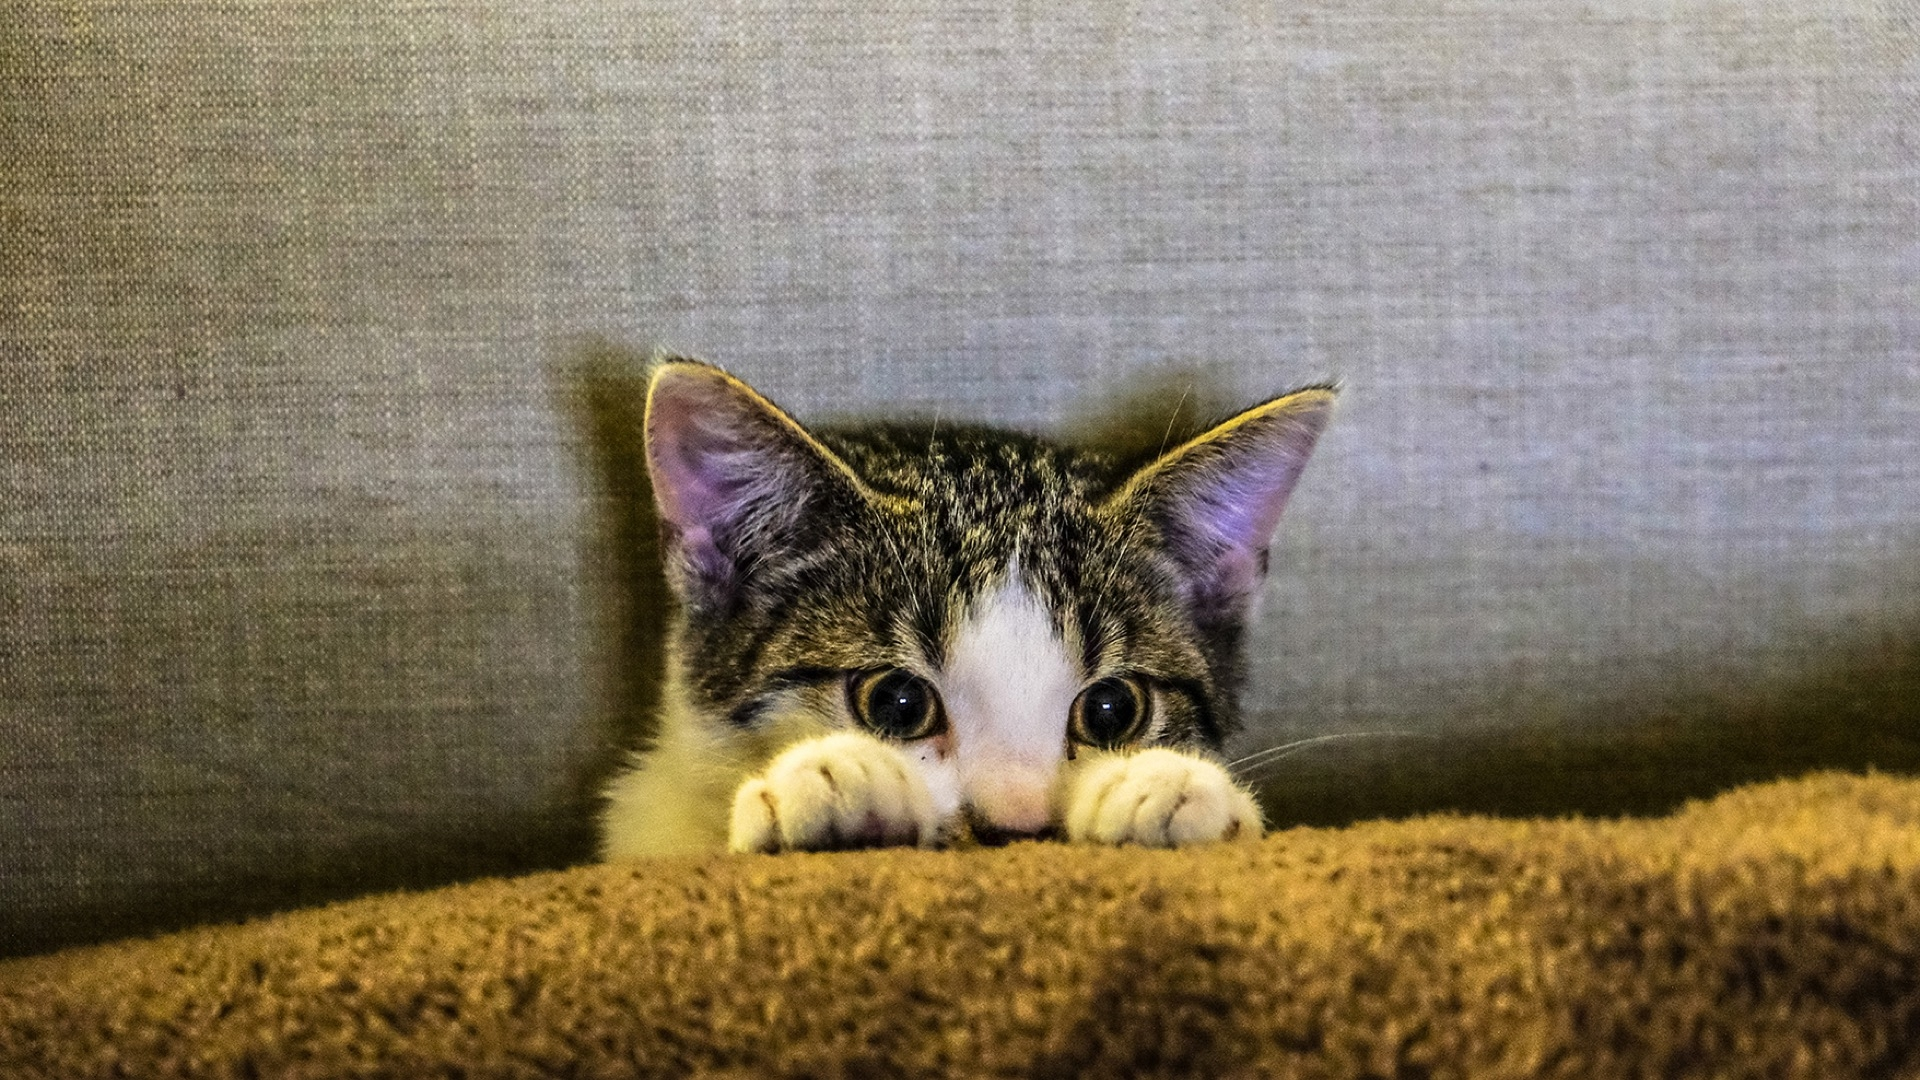 kitty peeking out from blanket